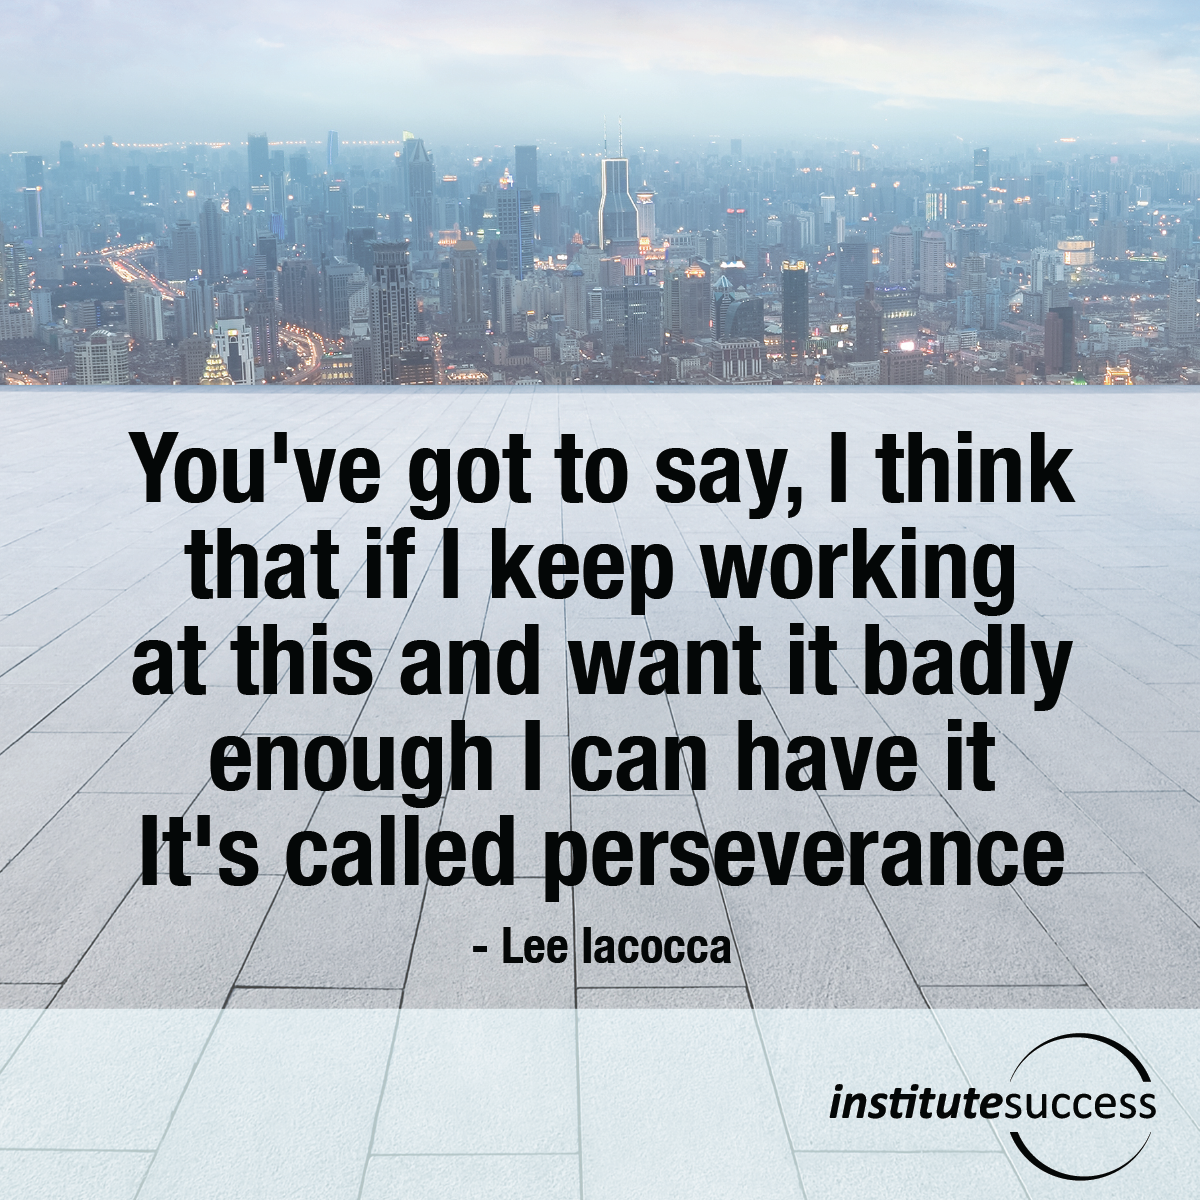 You've got to say, I think that if I keep working at this and want it badly enough I can have it. It's called perseverance – Lee Iacocca